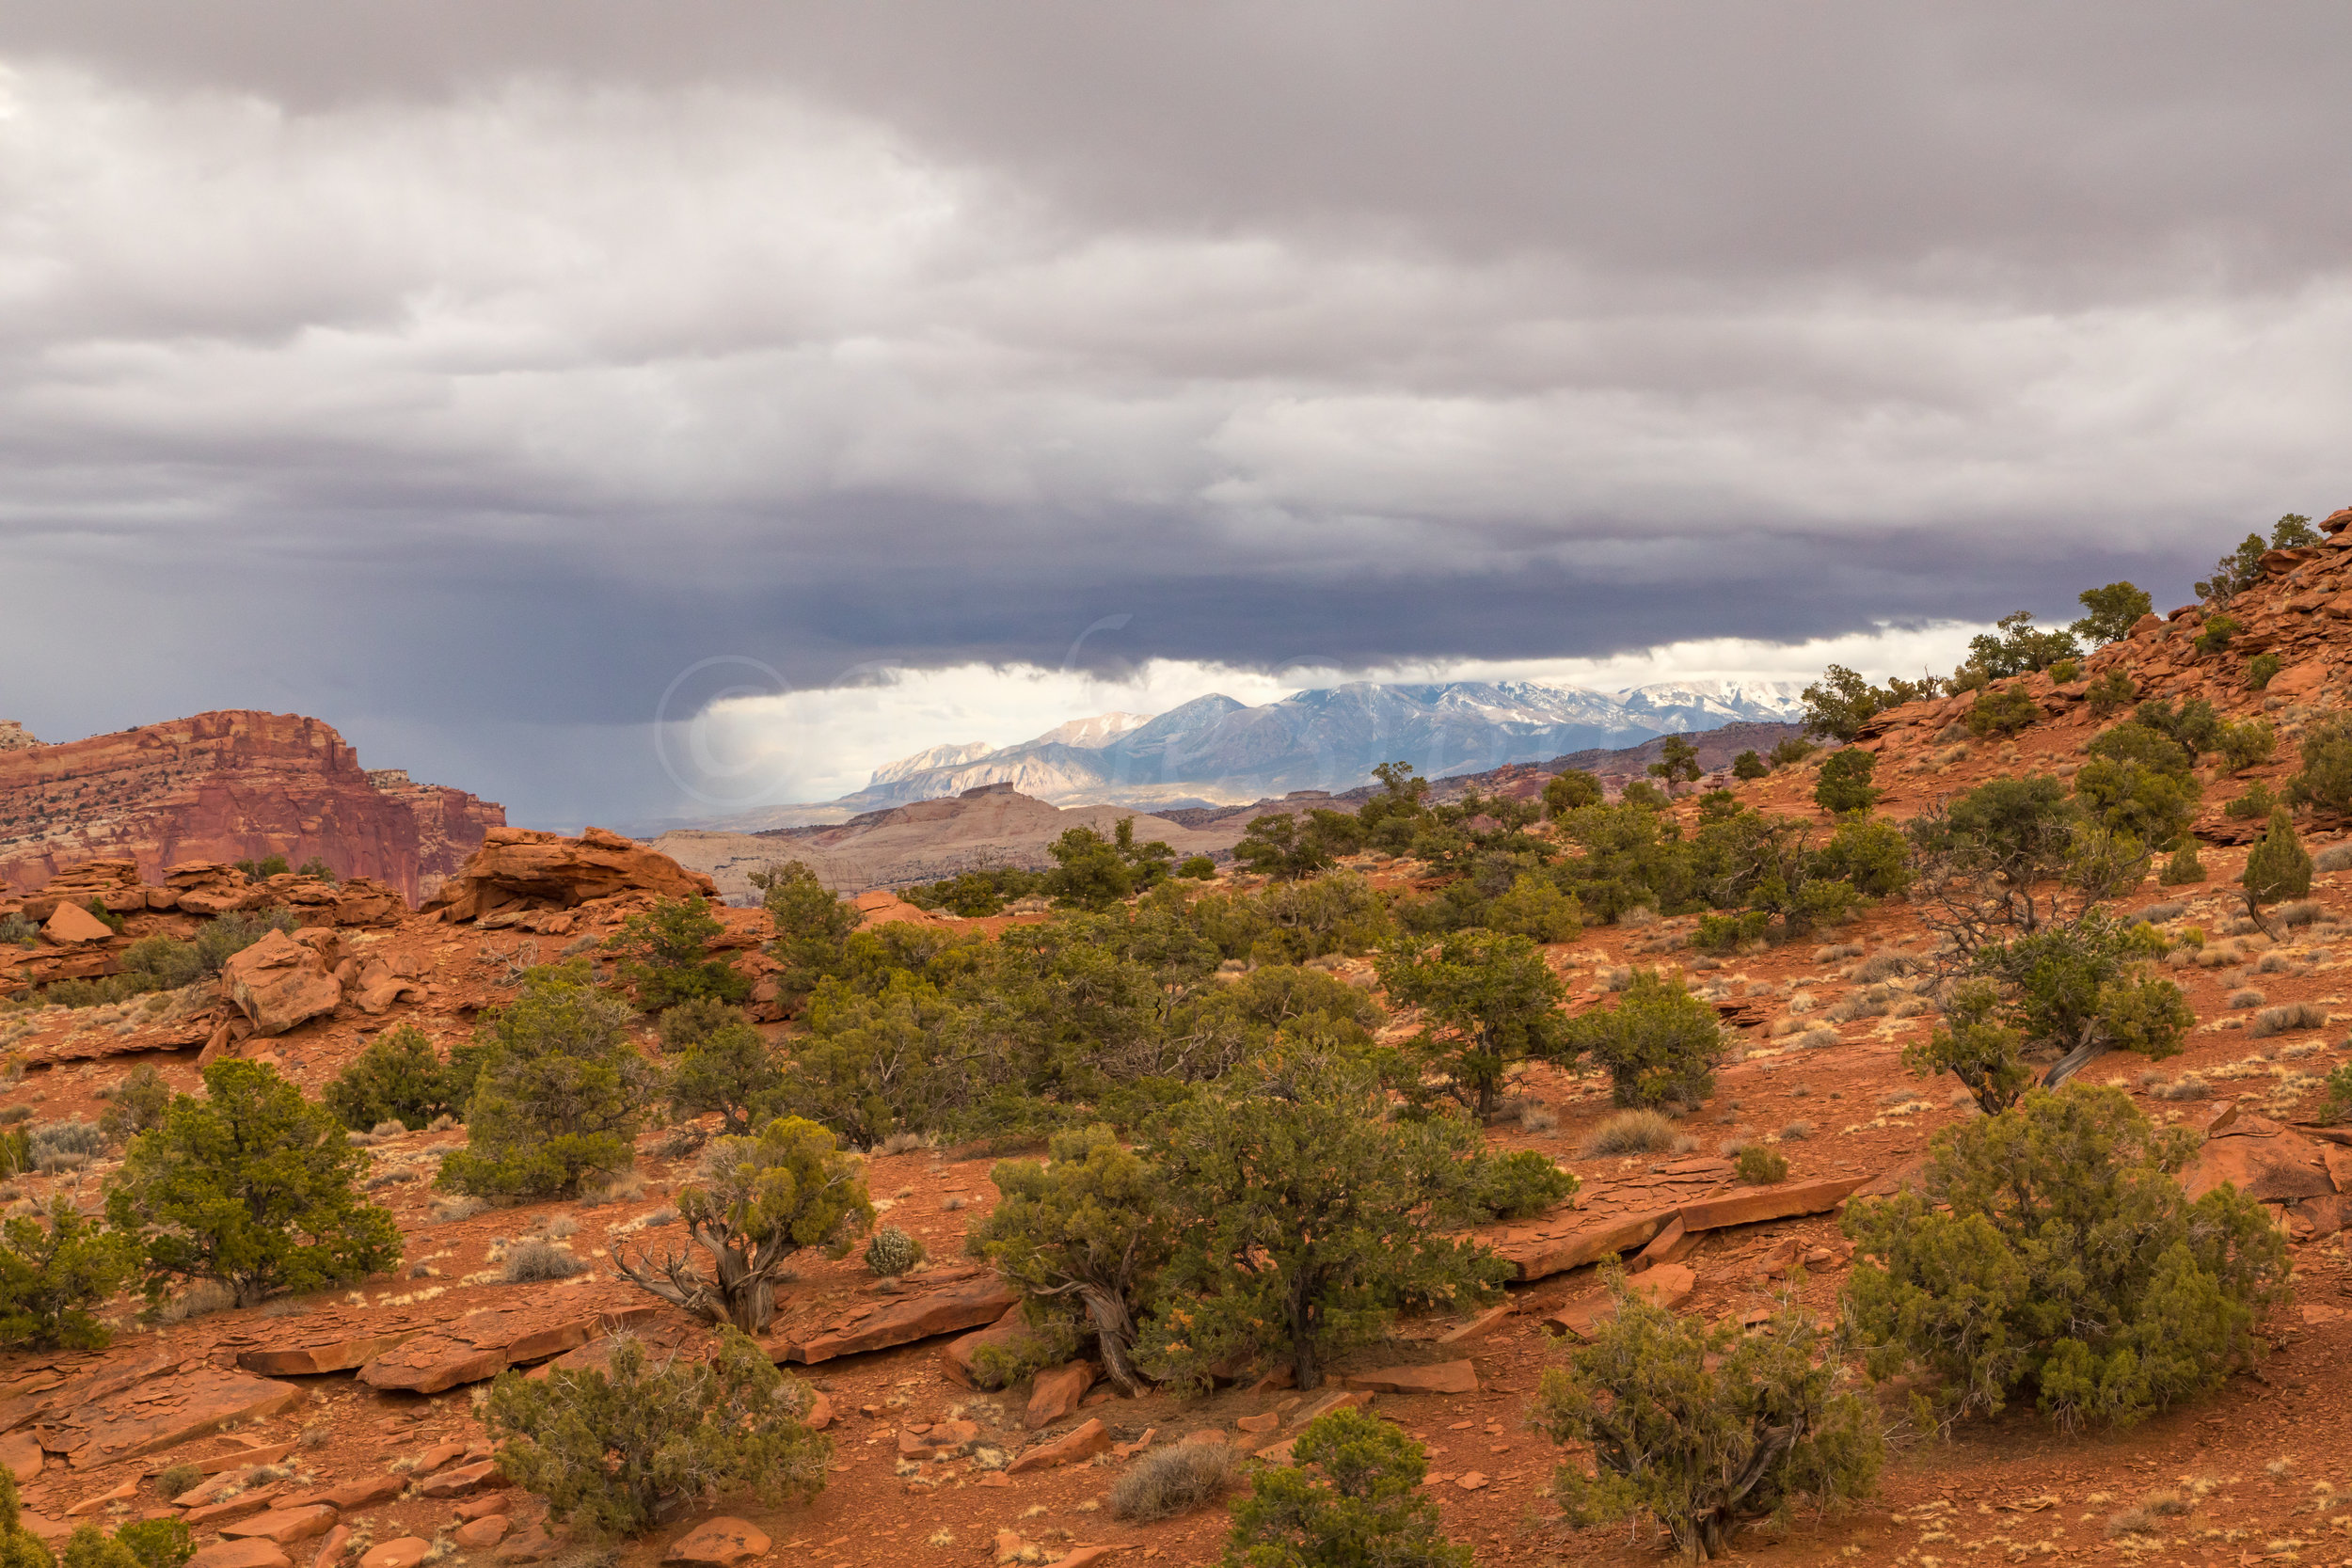 Capitol Reef National Park, Image # 0516